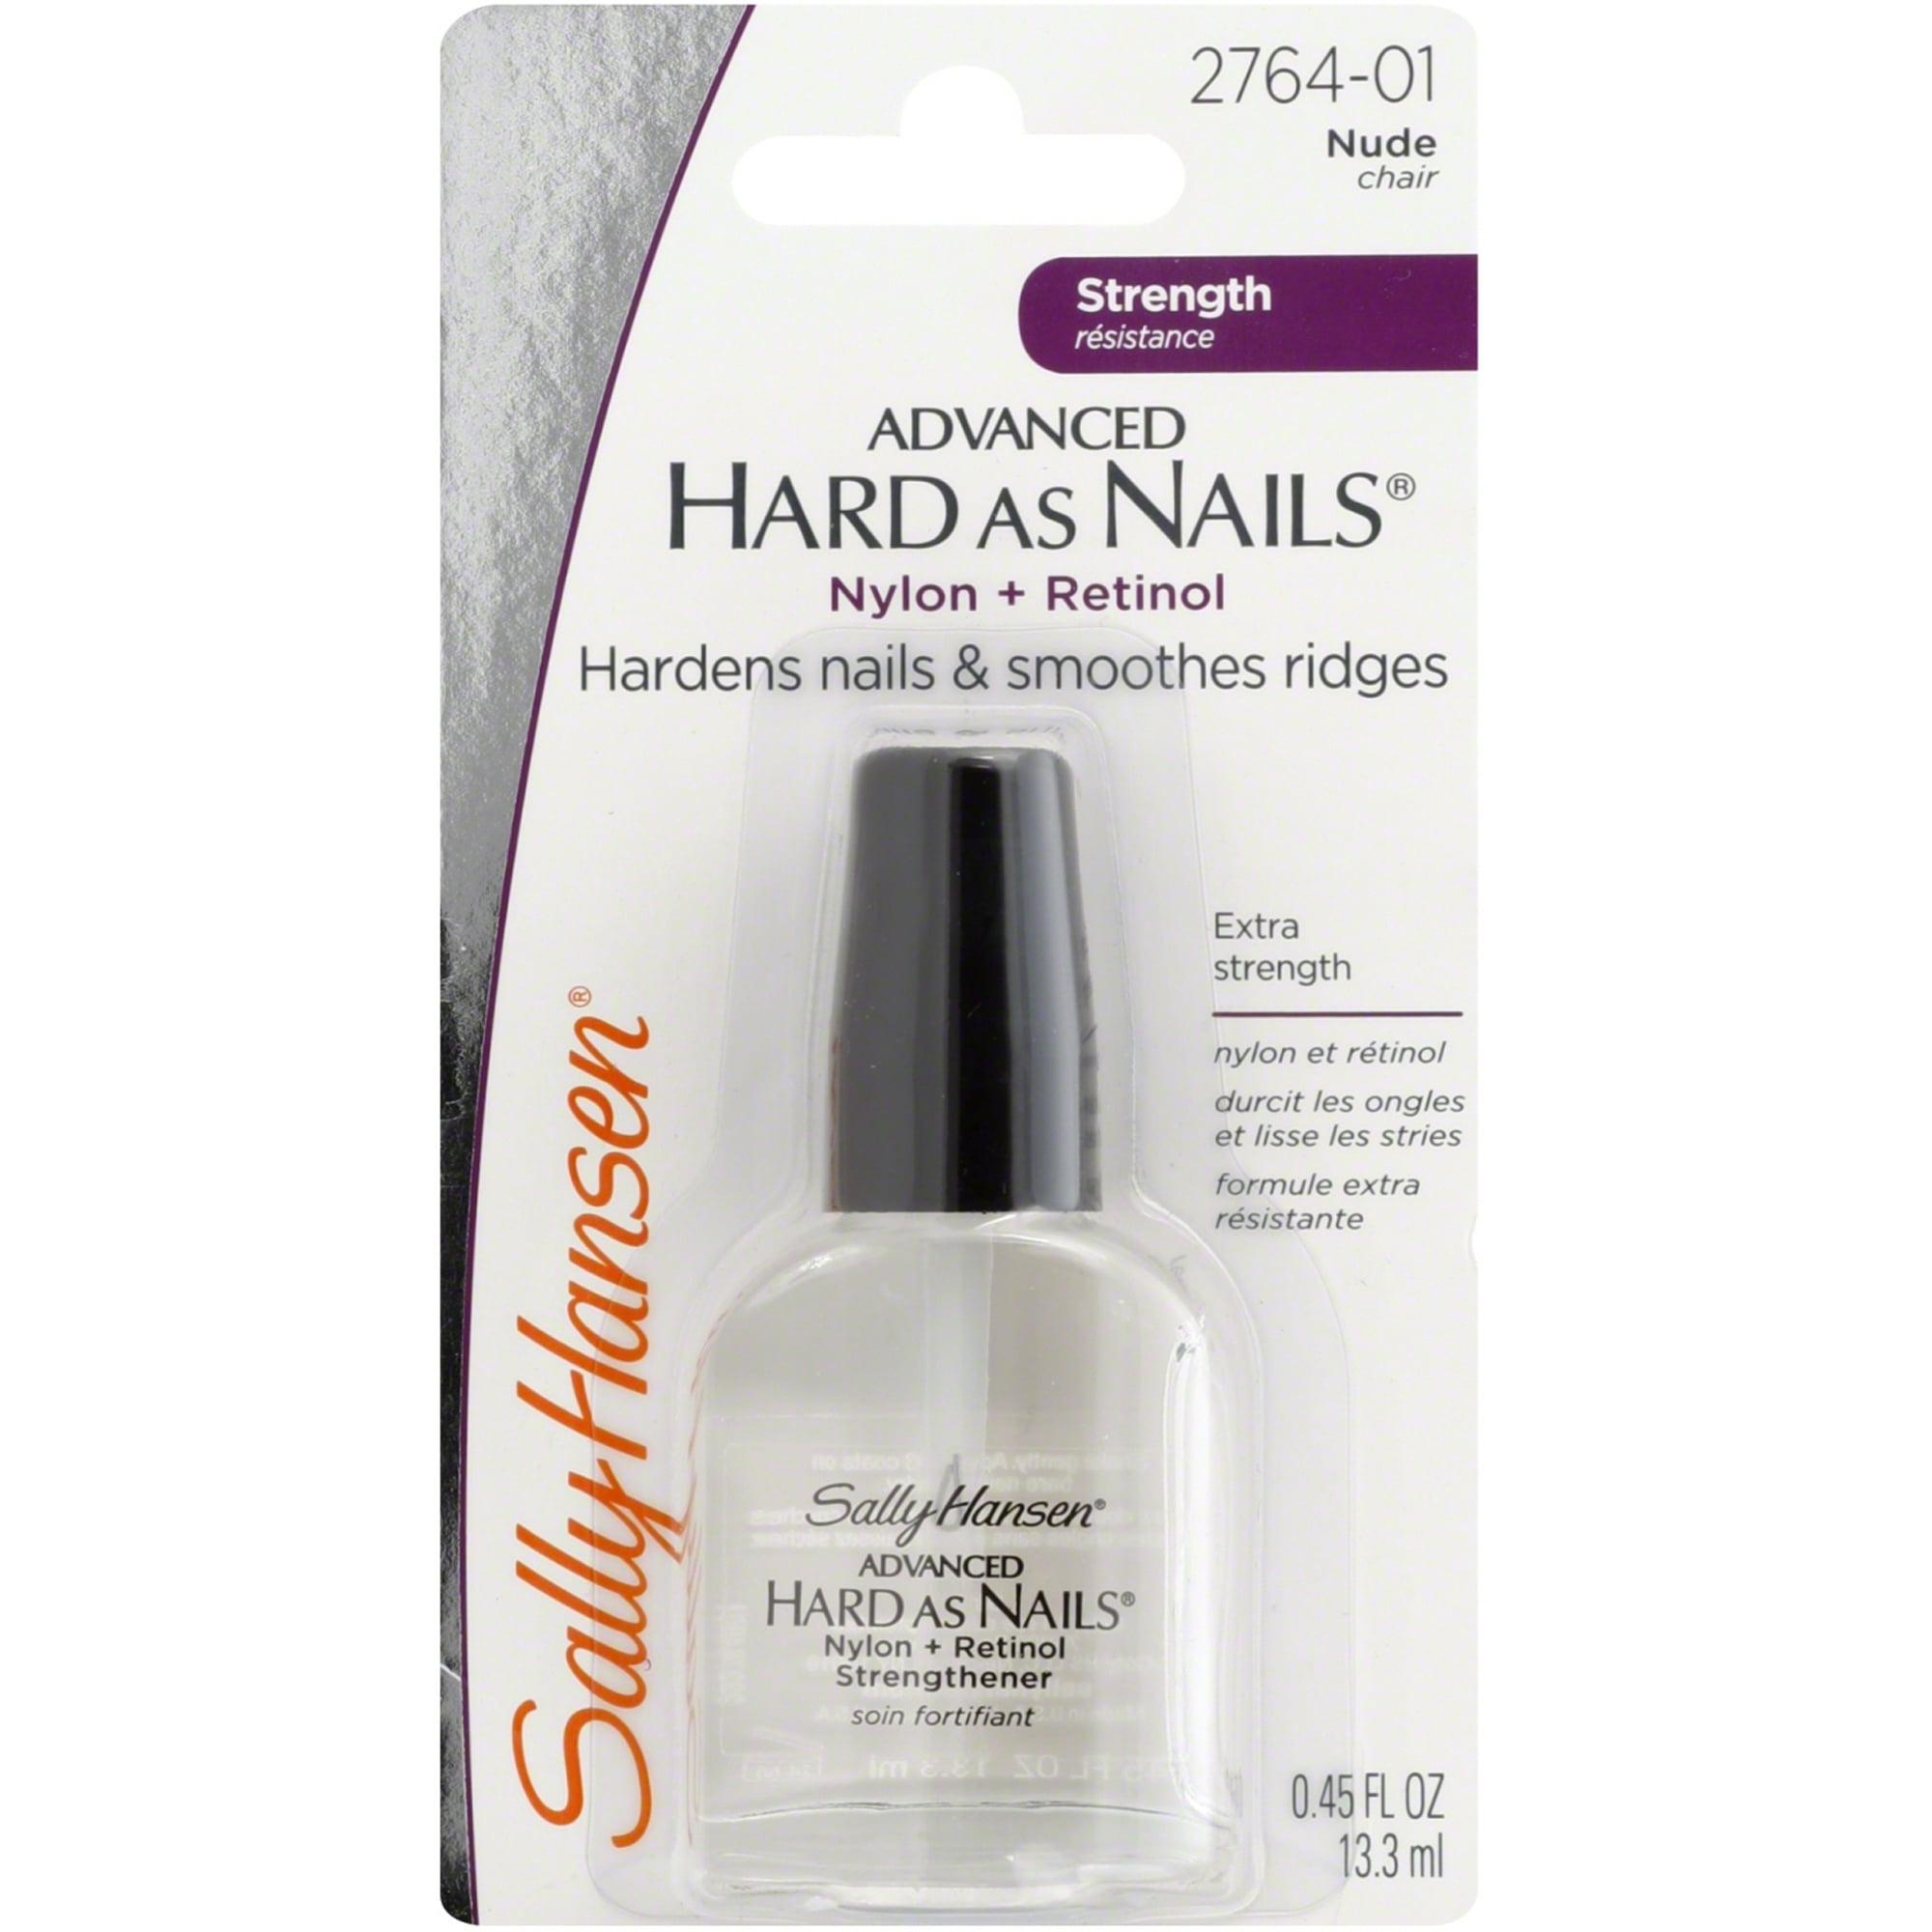 Advanced Hard As Nails - Hardens Nails & Smoothes Ridges 13ml (NUDE)